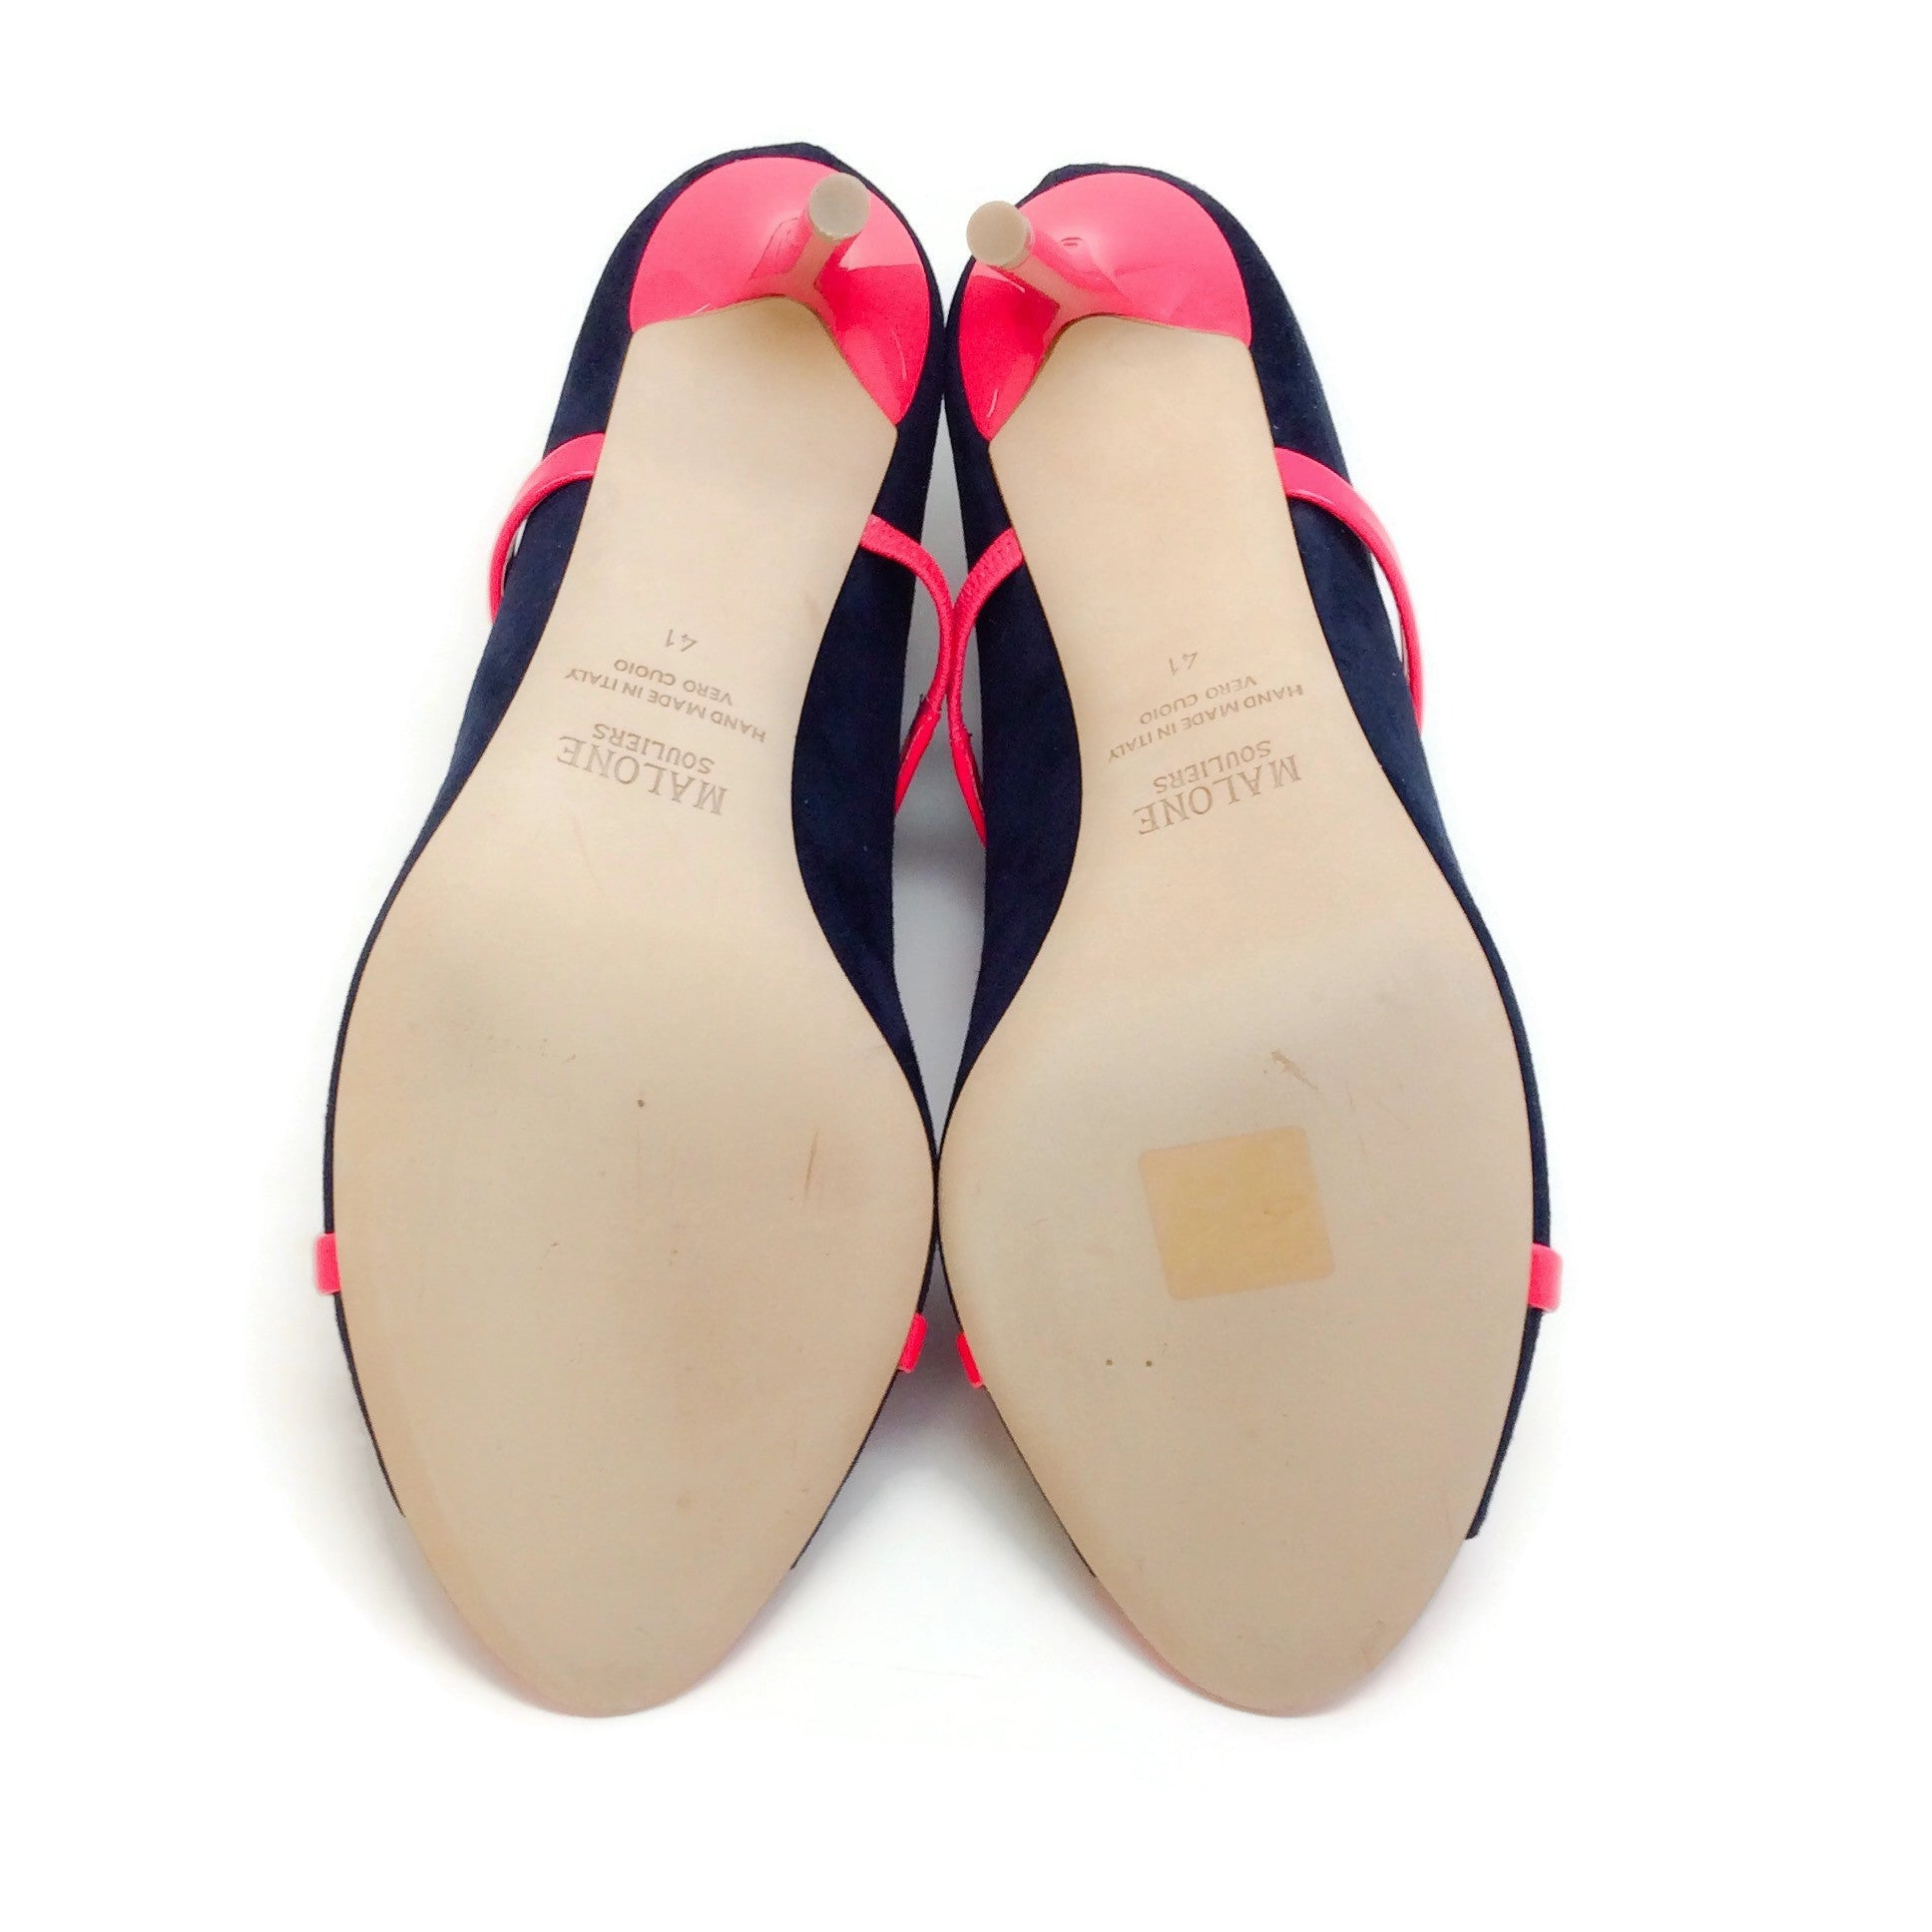 Malone Souliers Hot Pink / Navy Blue Suede Mika Pumps